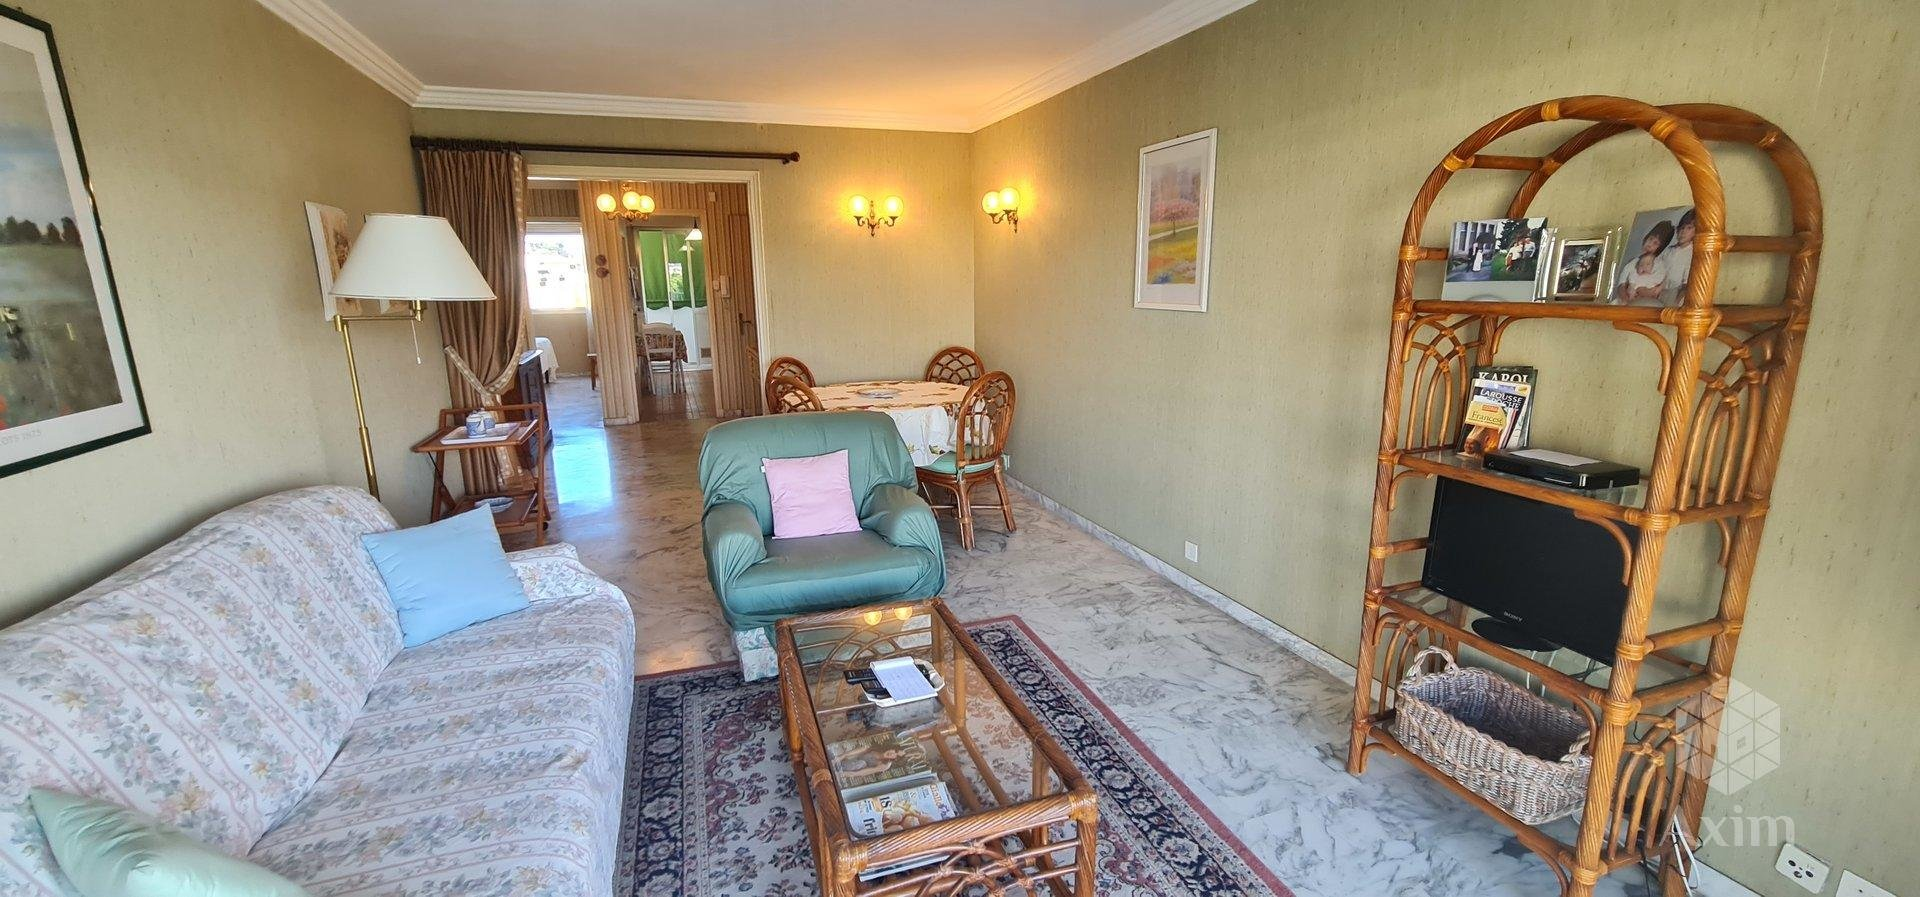 Apartment with sea view in front of Juan les pins beach.